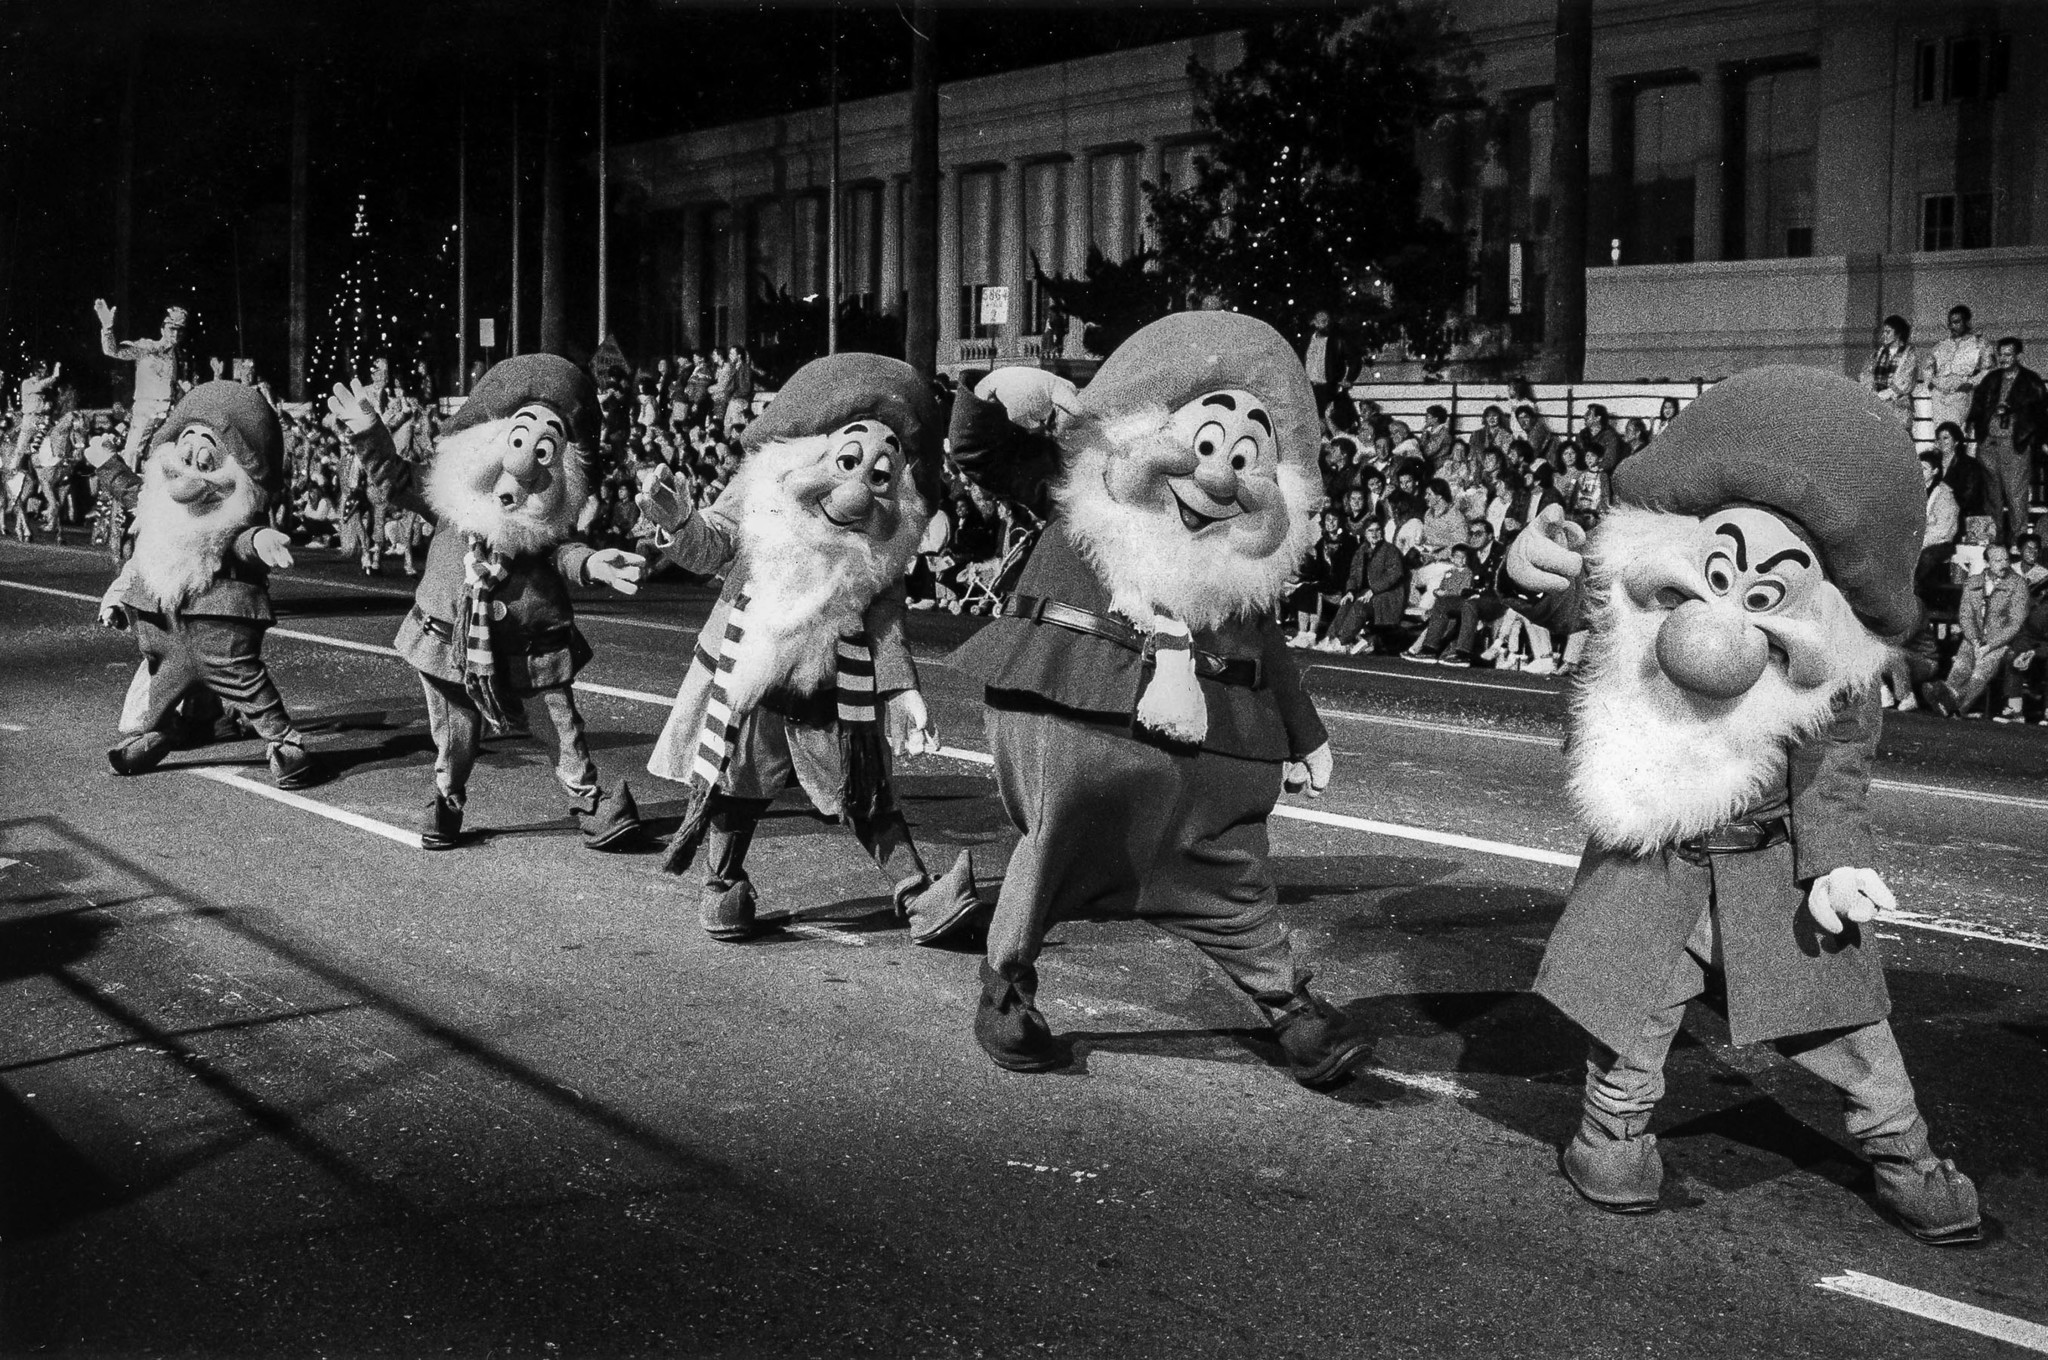 Nov. 27, 1988: Some of the Disney dwarfs march in the Hollywood Christmas Parade along Sunset Blvd.